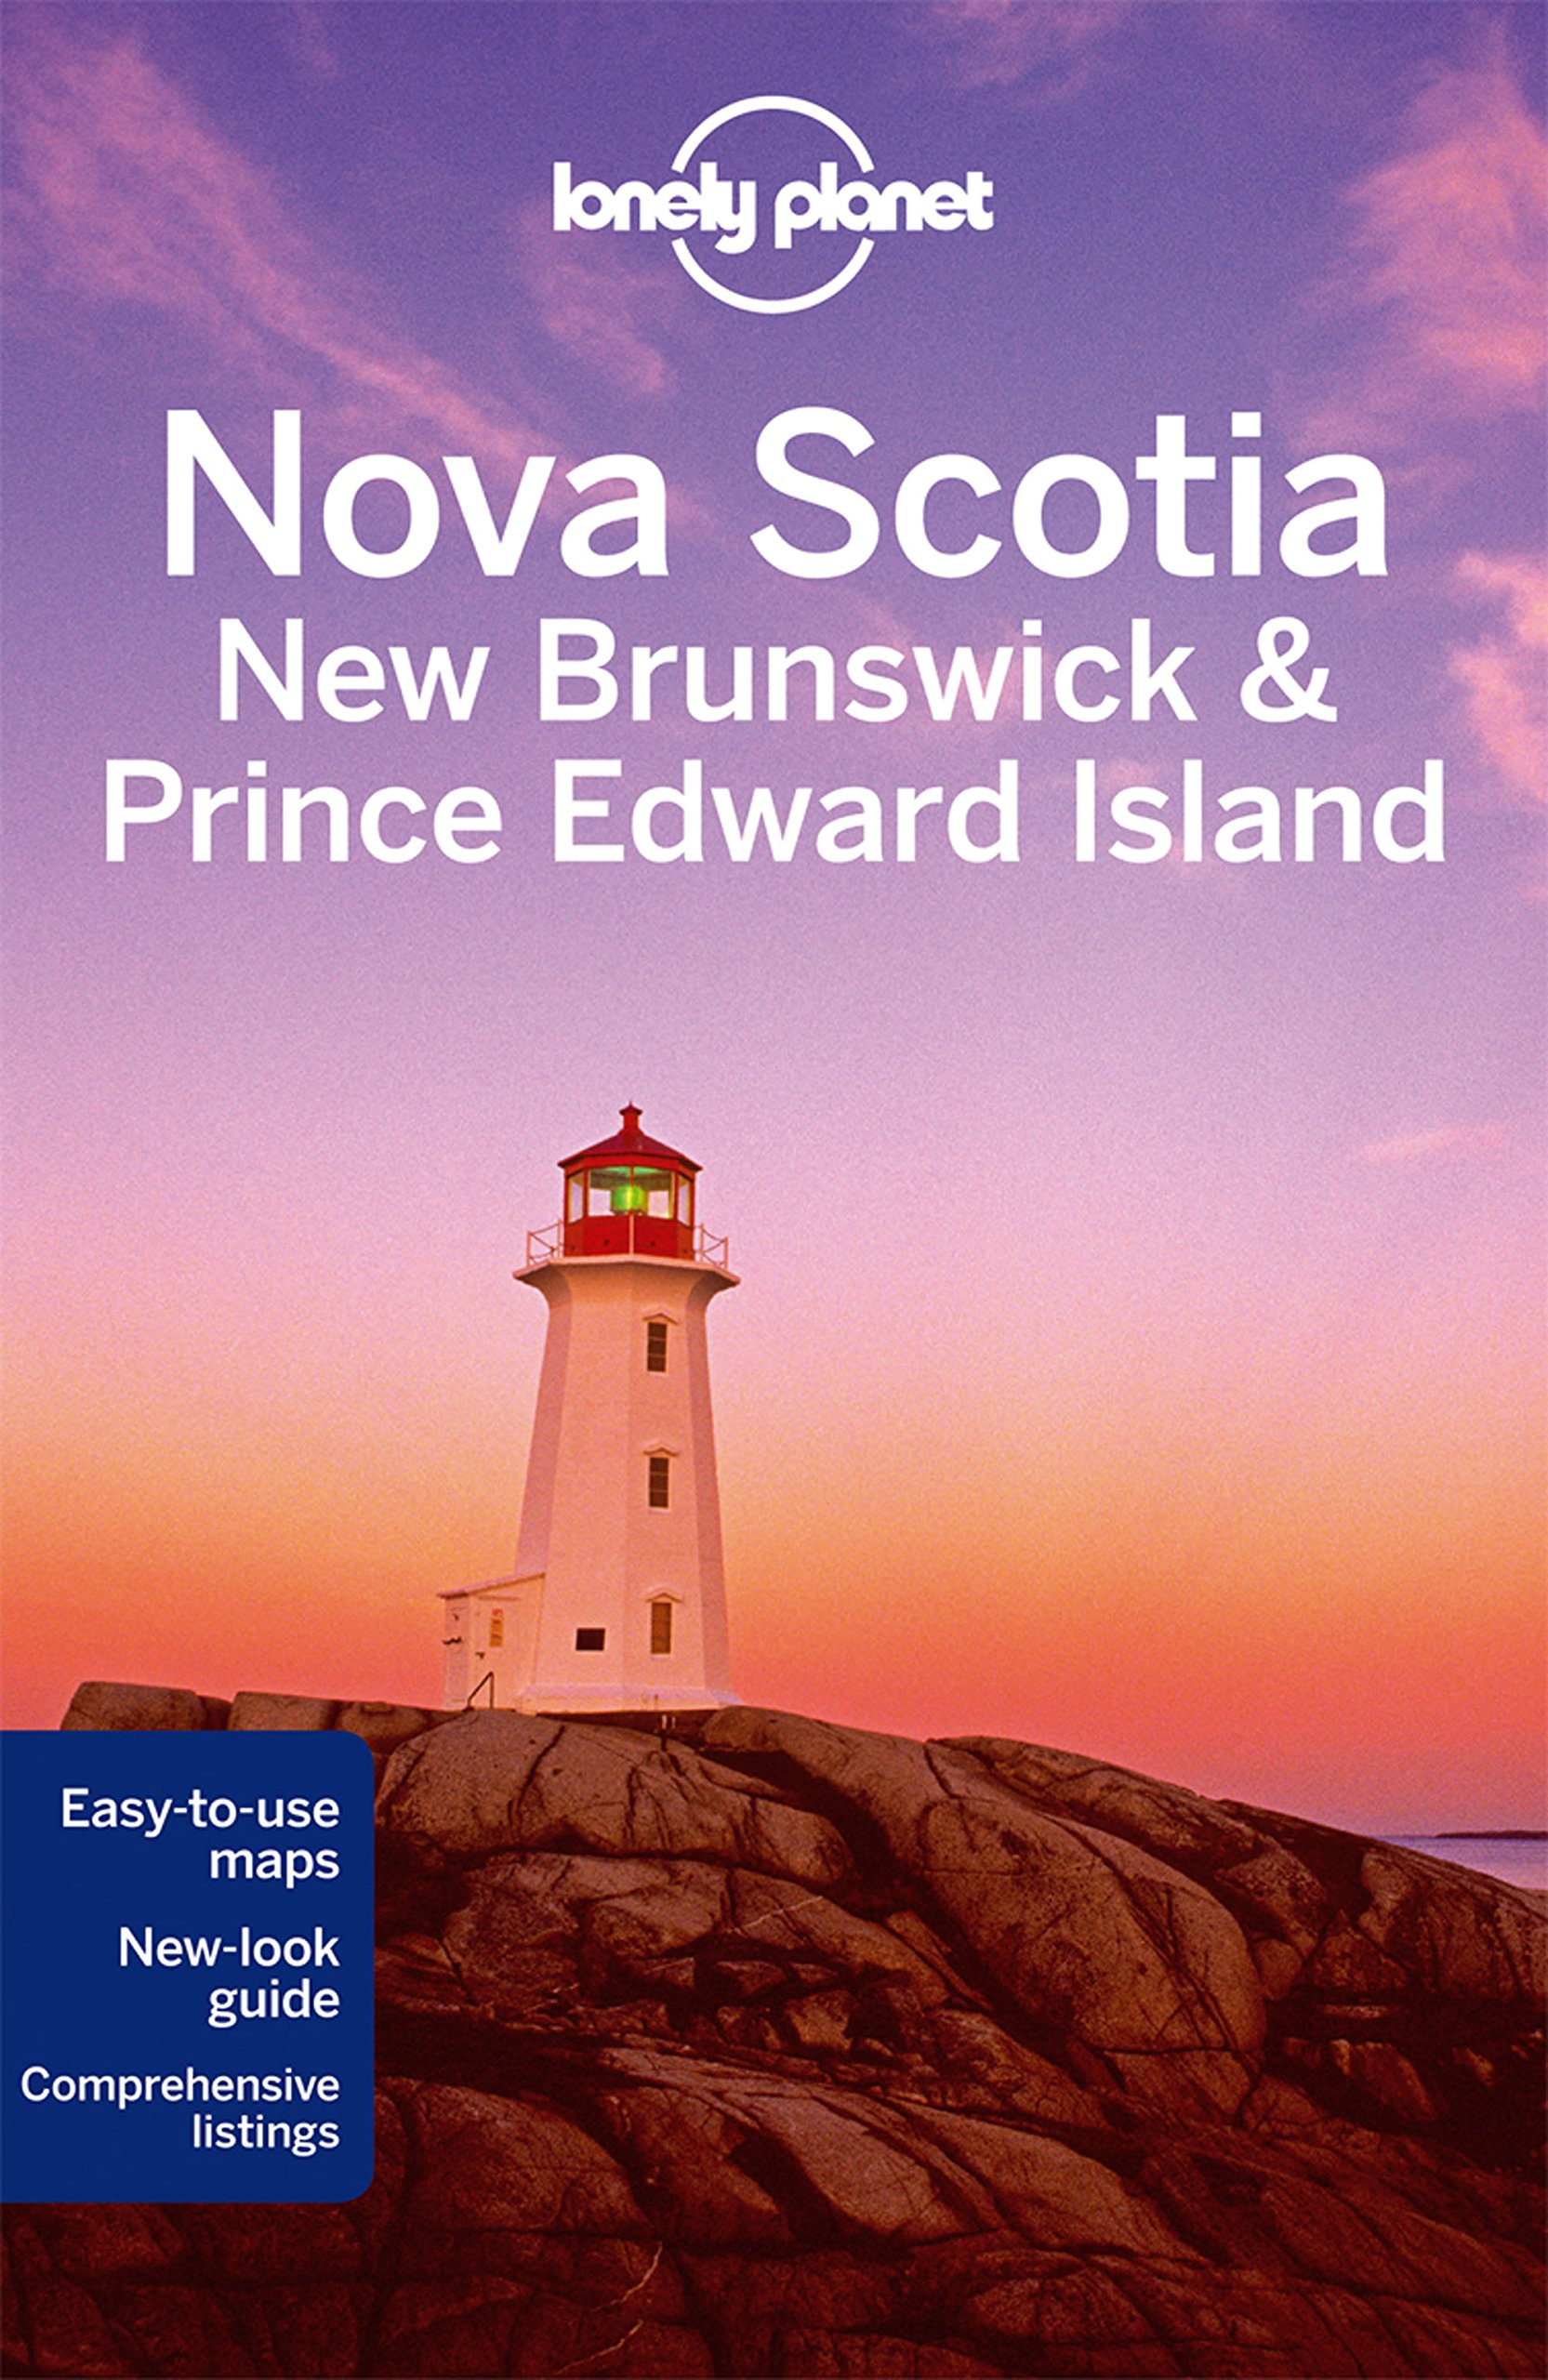 Lonely Planet Nova Scotia, New Brunswick & Prince Edward Island (Country Regional Guides)